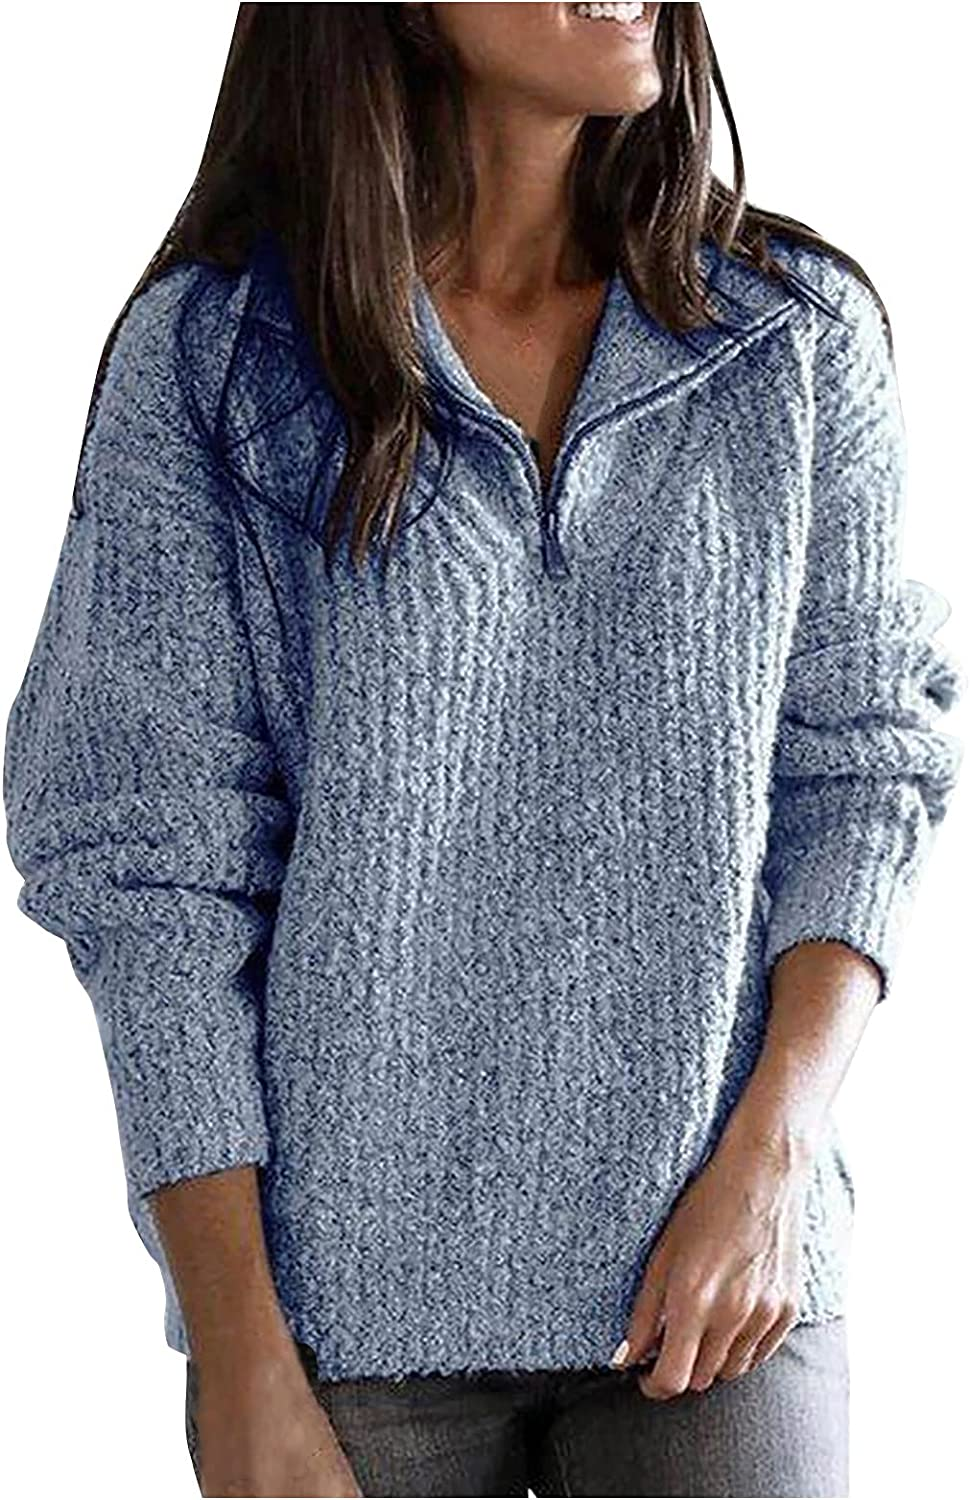 Women Stand Collar Ribbed 1/4 Zip Up Knitwear Sweater Pullover Tops Baggy Lapel O Neck Long Sleeve Sweaters Sweatshirt